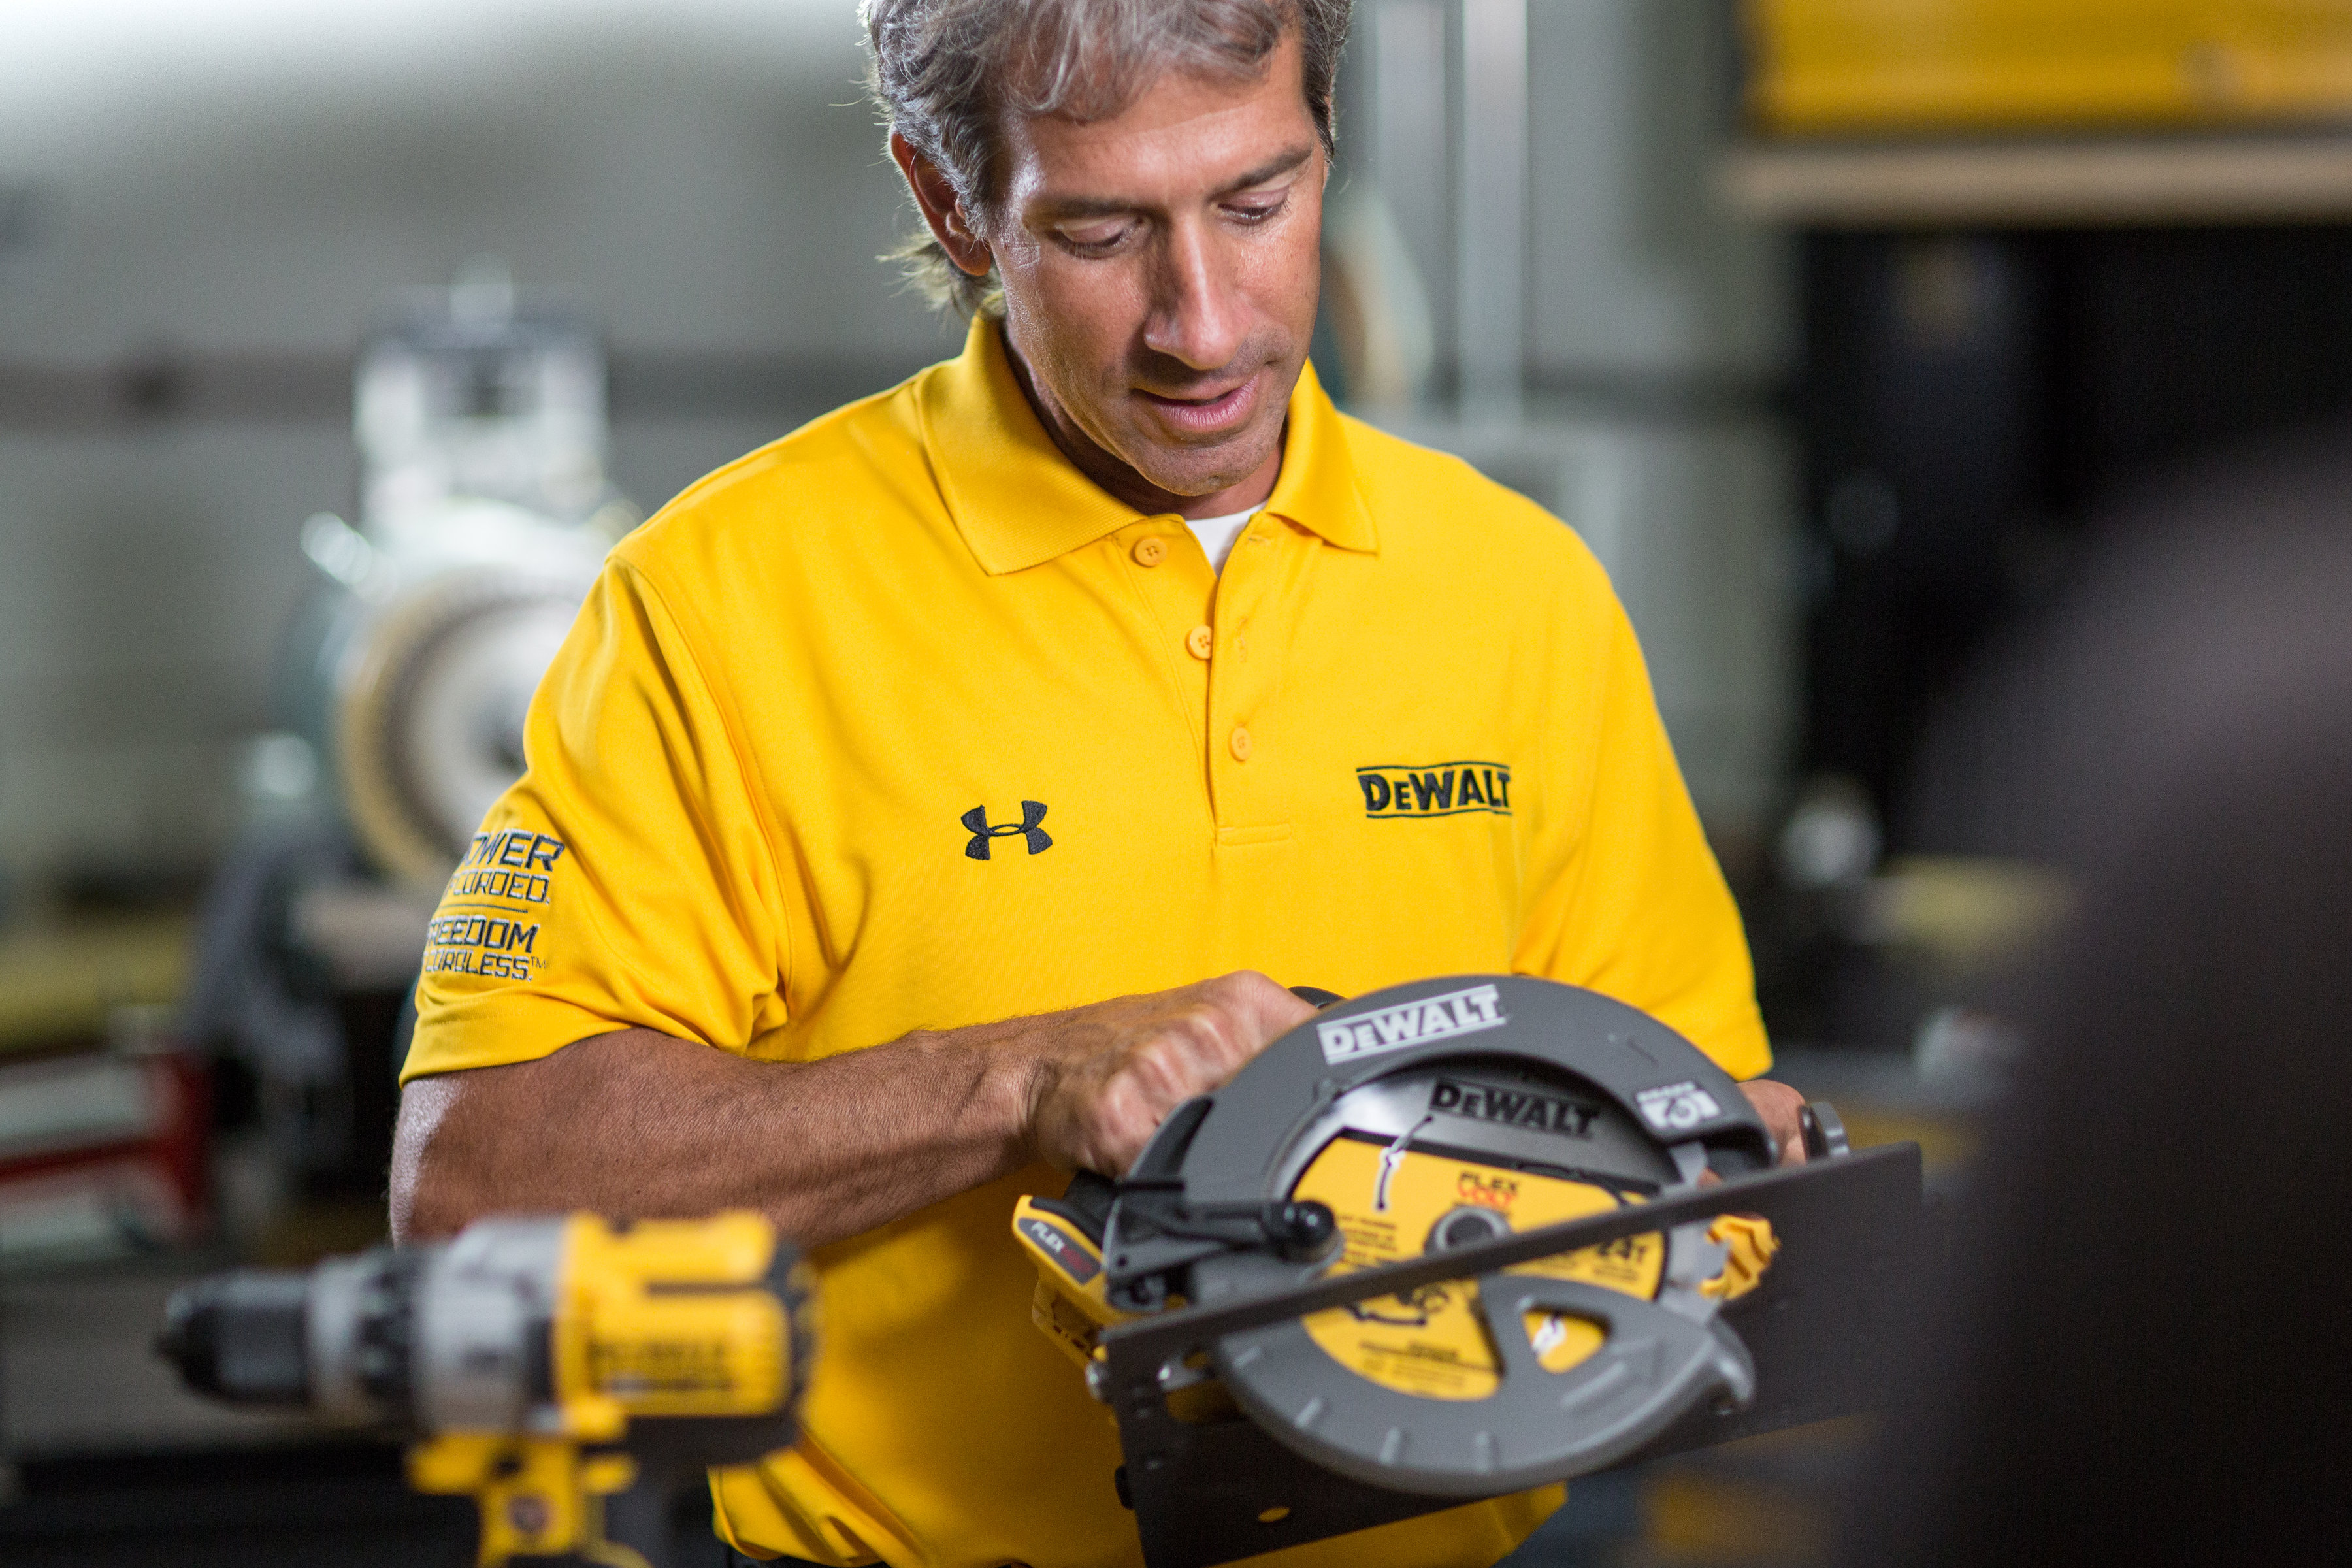 DEWALT FLEXVOLT® Innovation